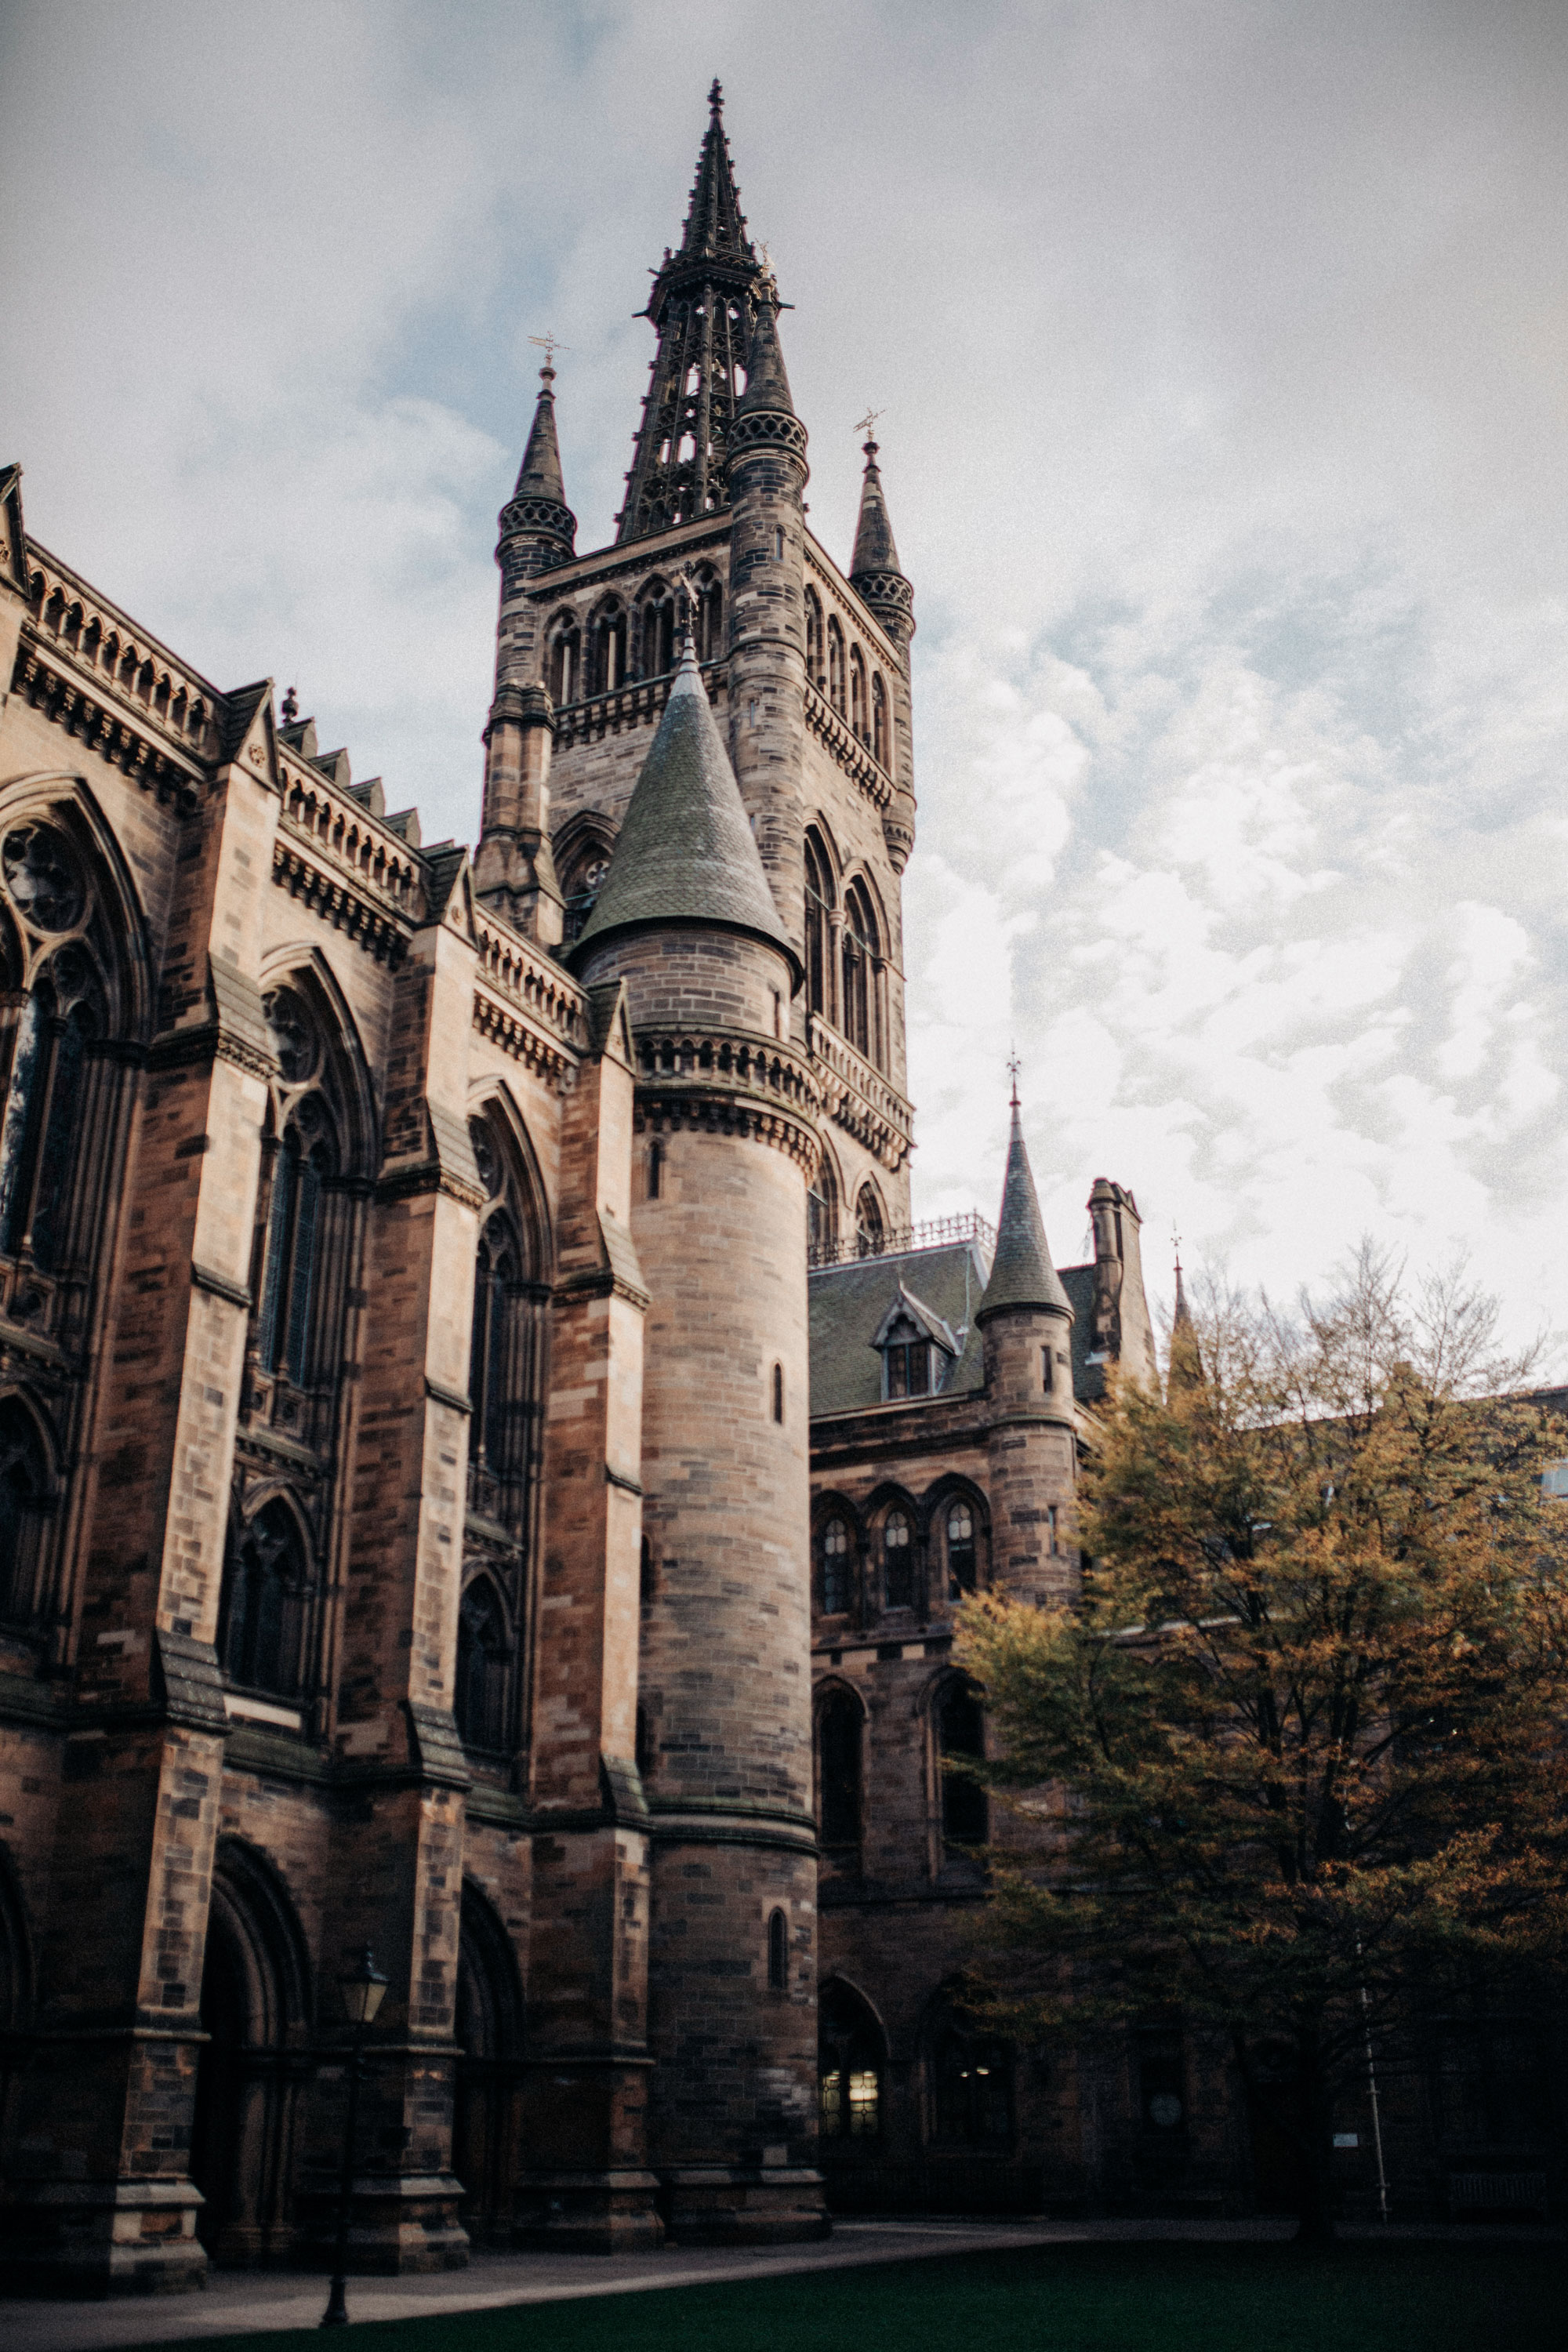 Glasgow University | Hogwarts | Harry Potter locations in Scotland | Edinburgh | Travel | Roadtrip | must see | Trip | recommendations | sightseeing